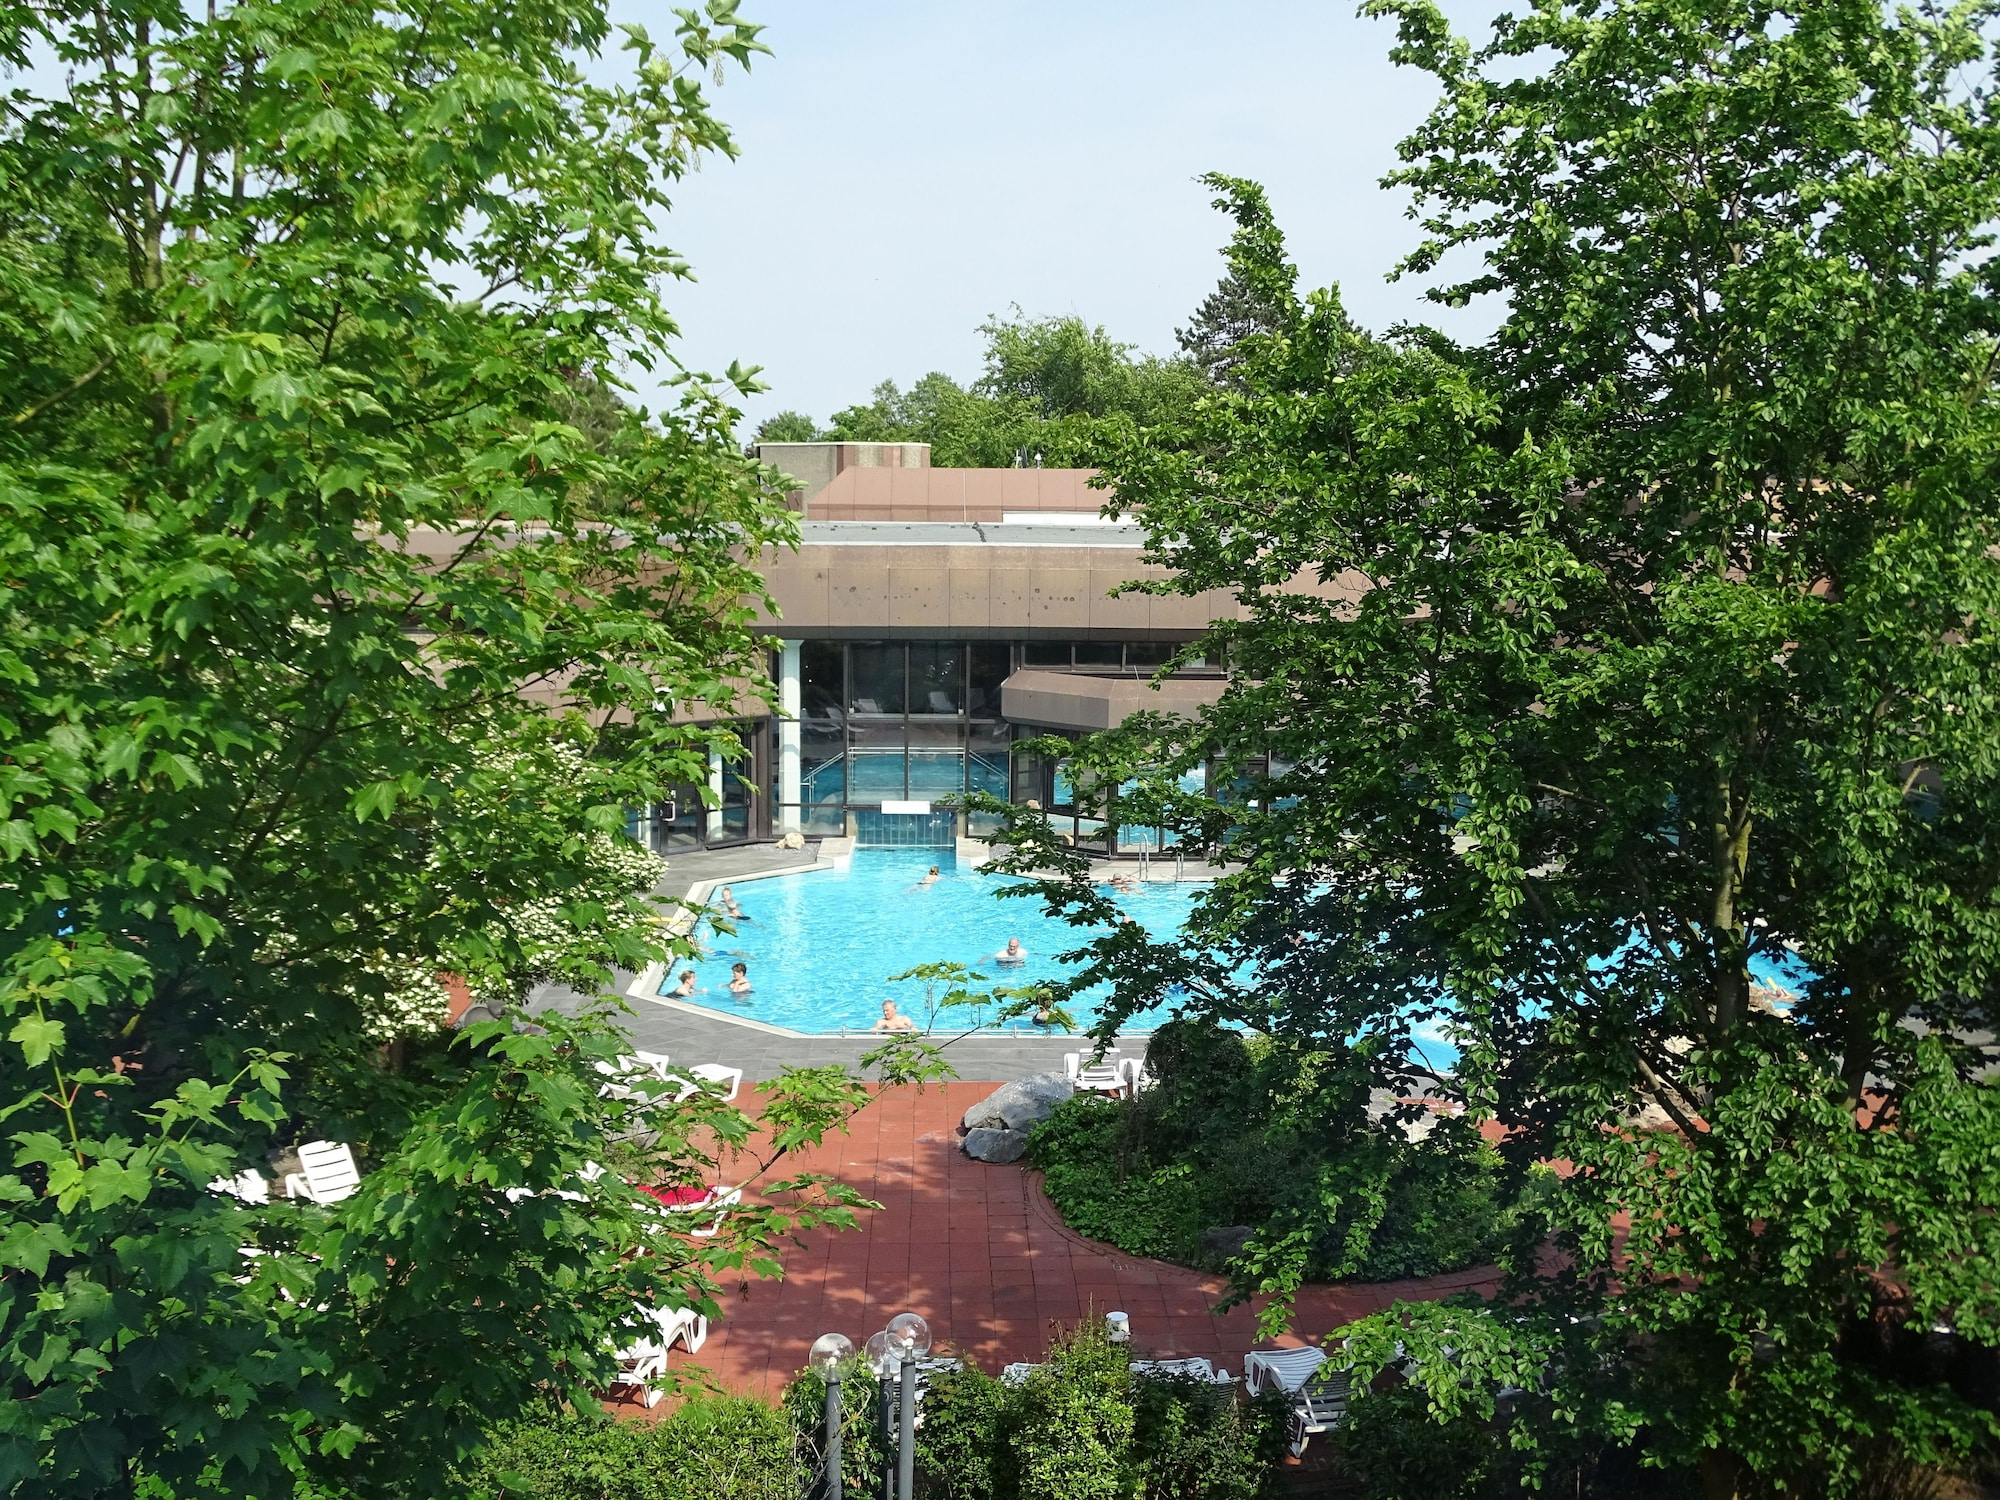 Hotel zur Therme, Soest